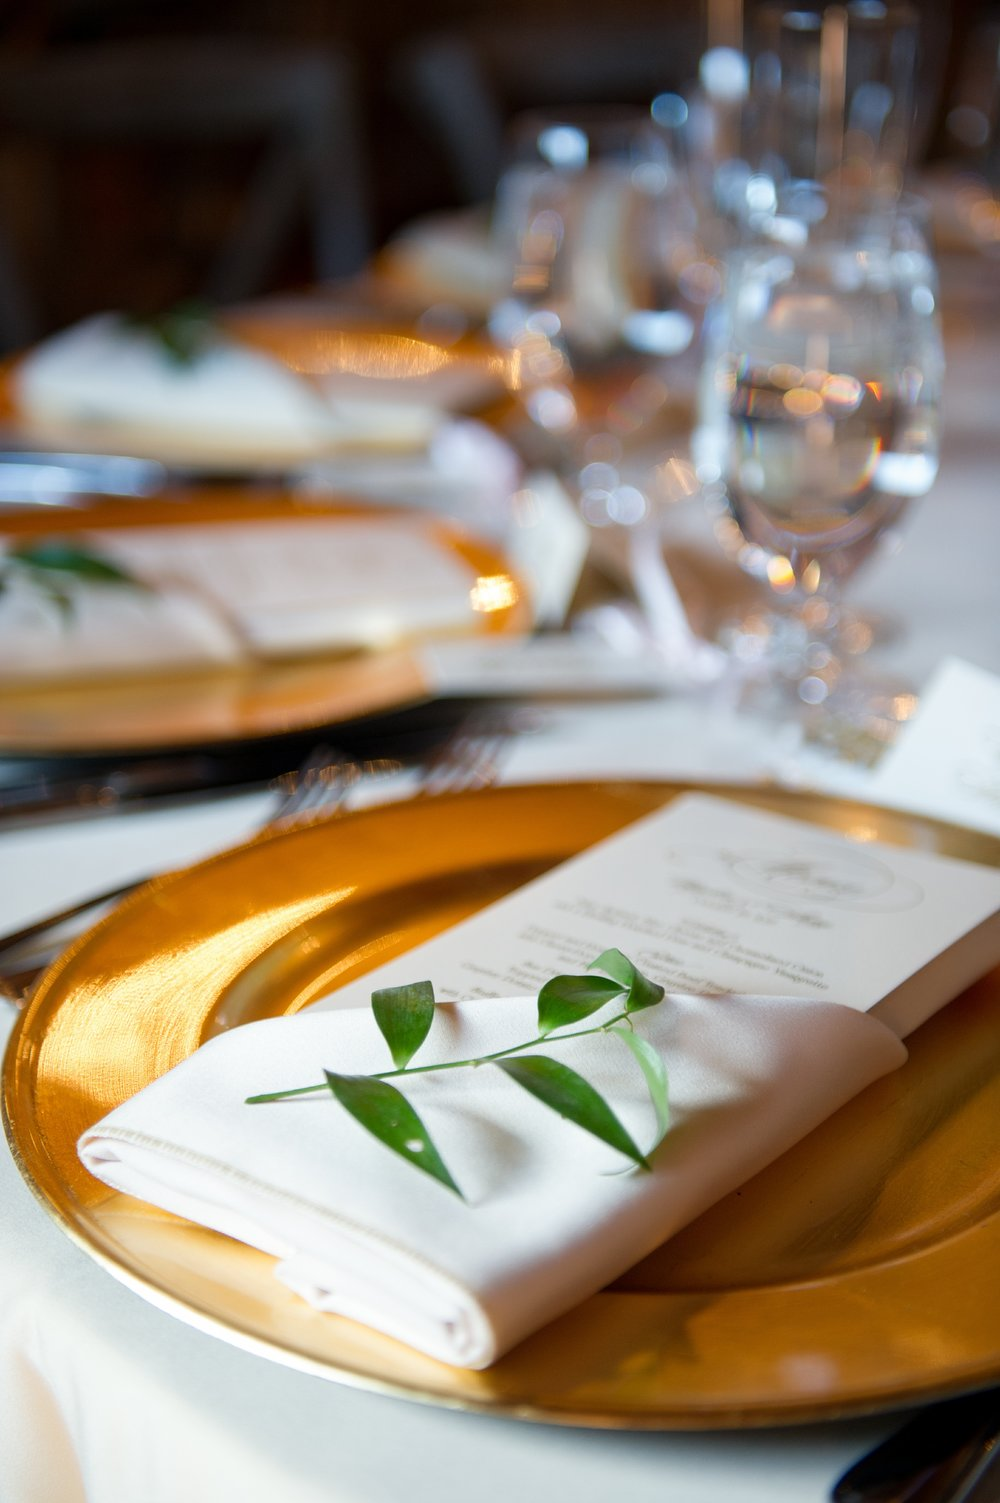 Tables were set with coordinating script menu cards tucked into napkins atop gold chargers, with sprigs of greenery at each place setting.